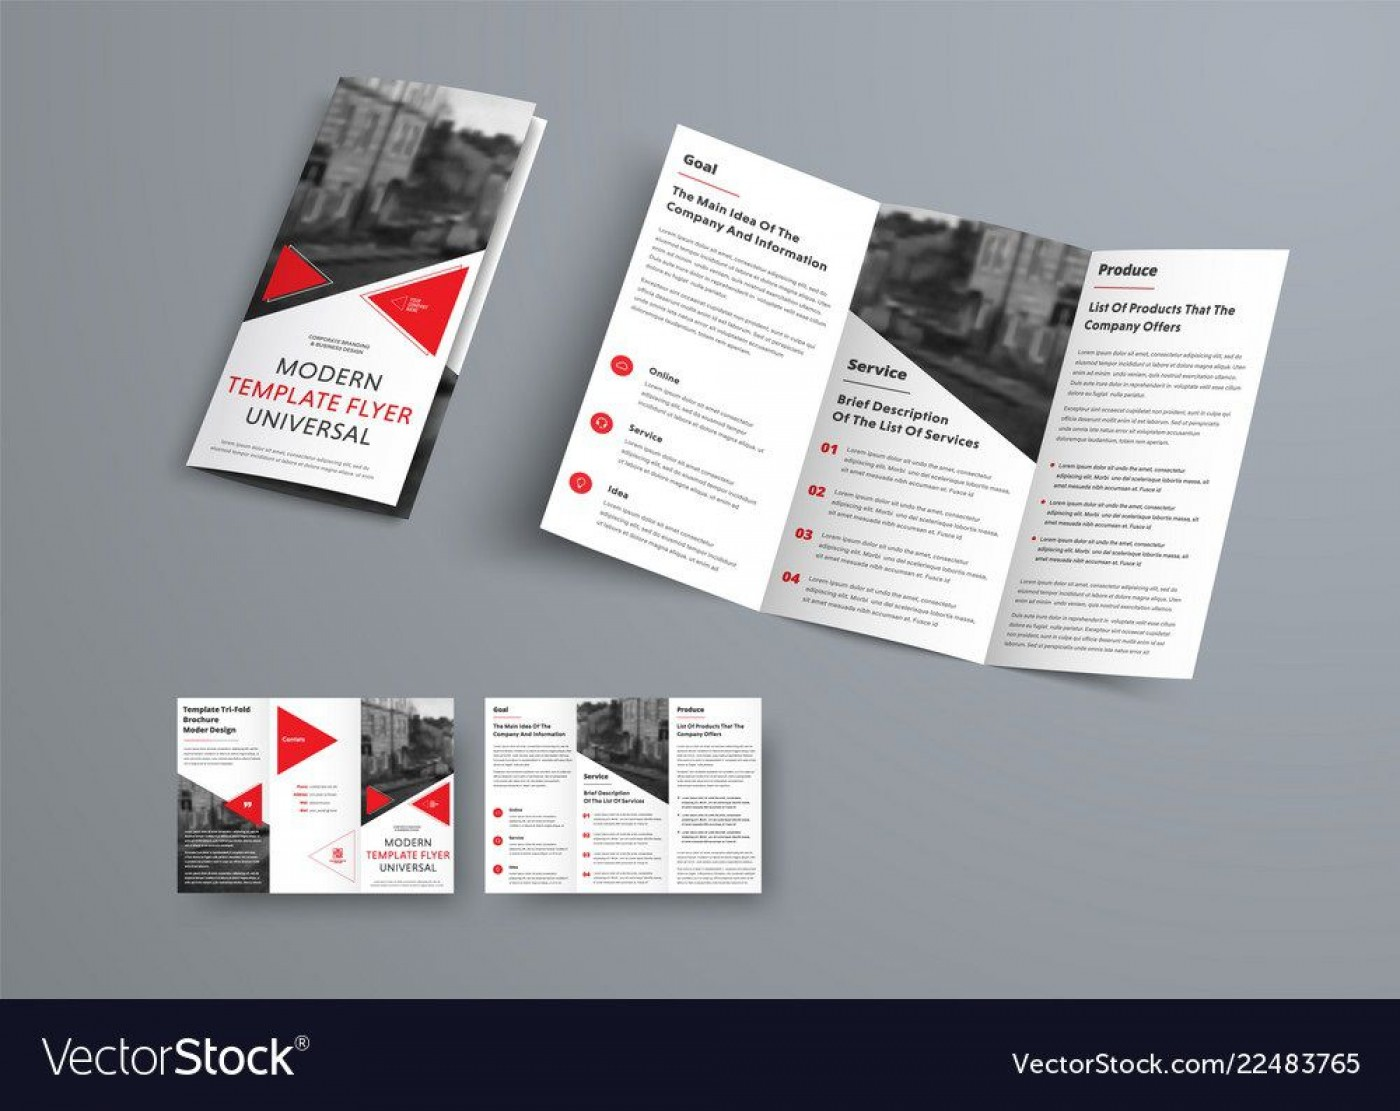 008 Remarkable 3 Fold Brochure Template Inspiration  For Free1400